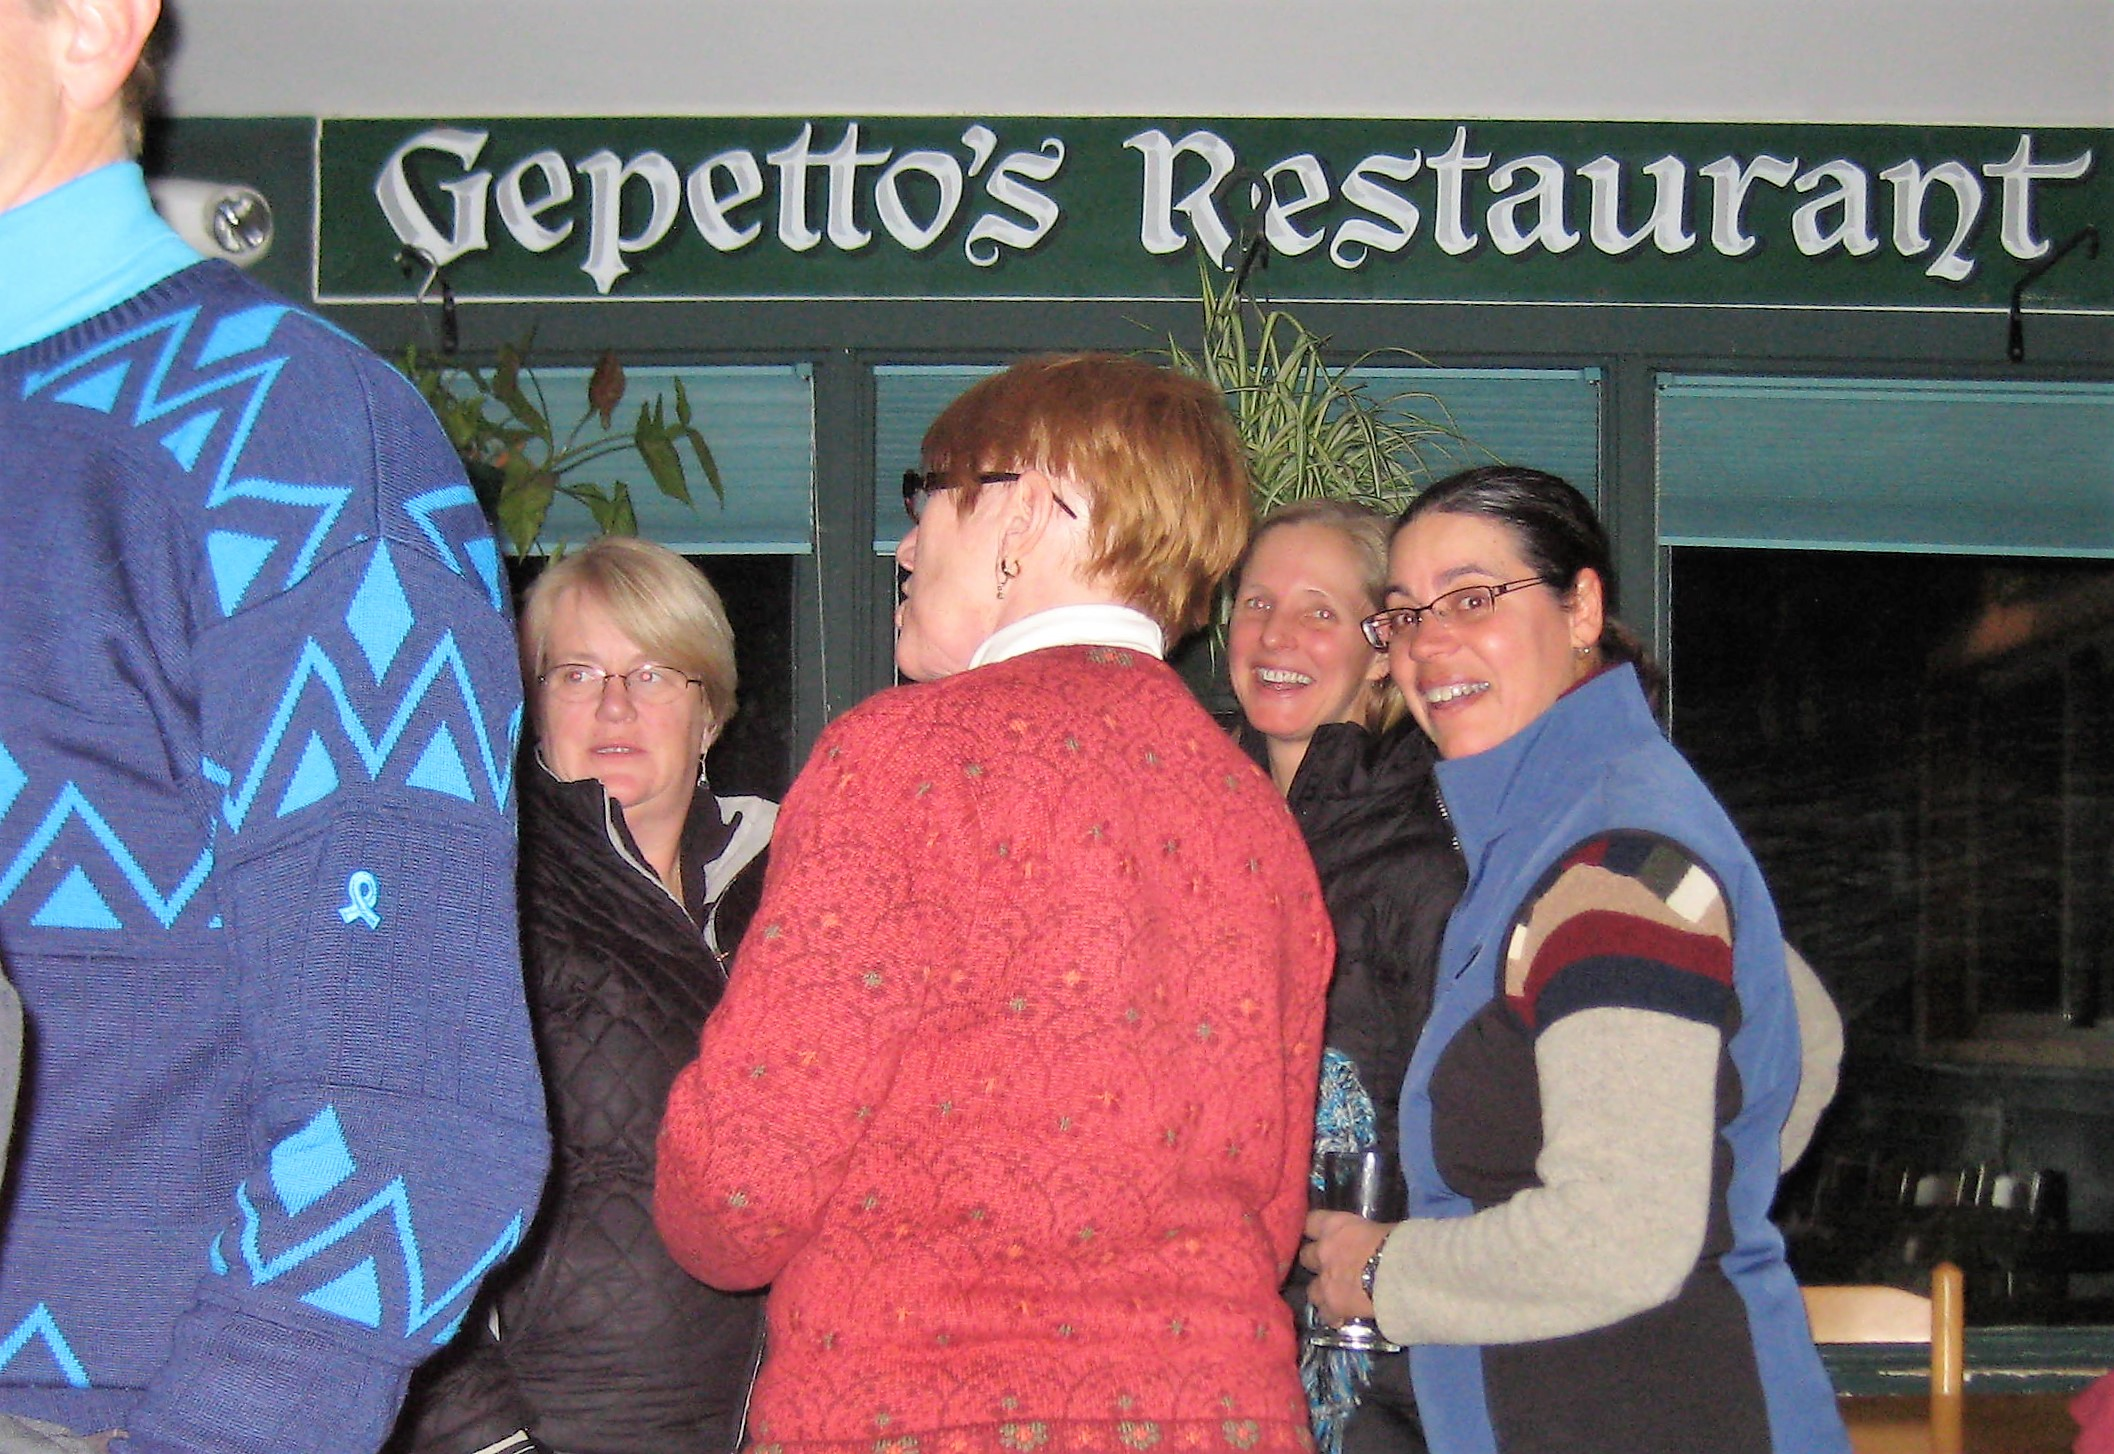 Gepetto's